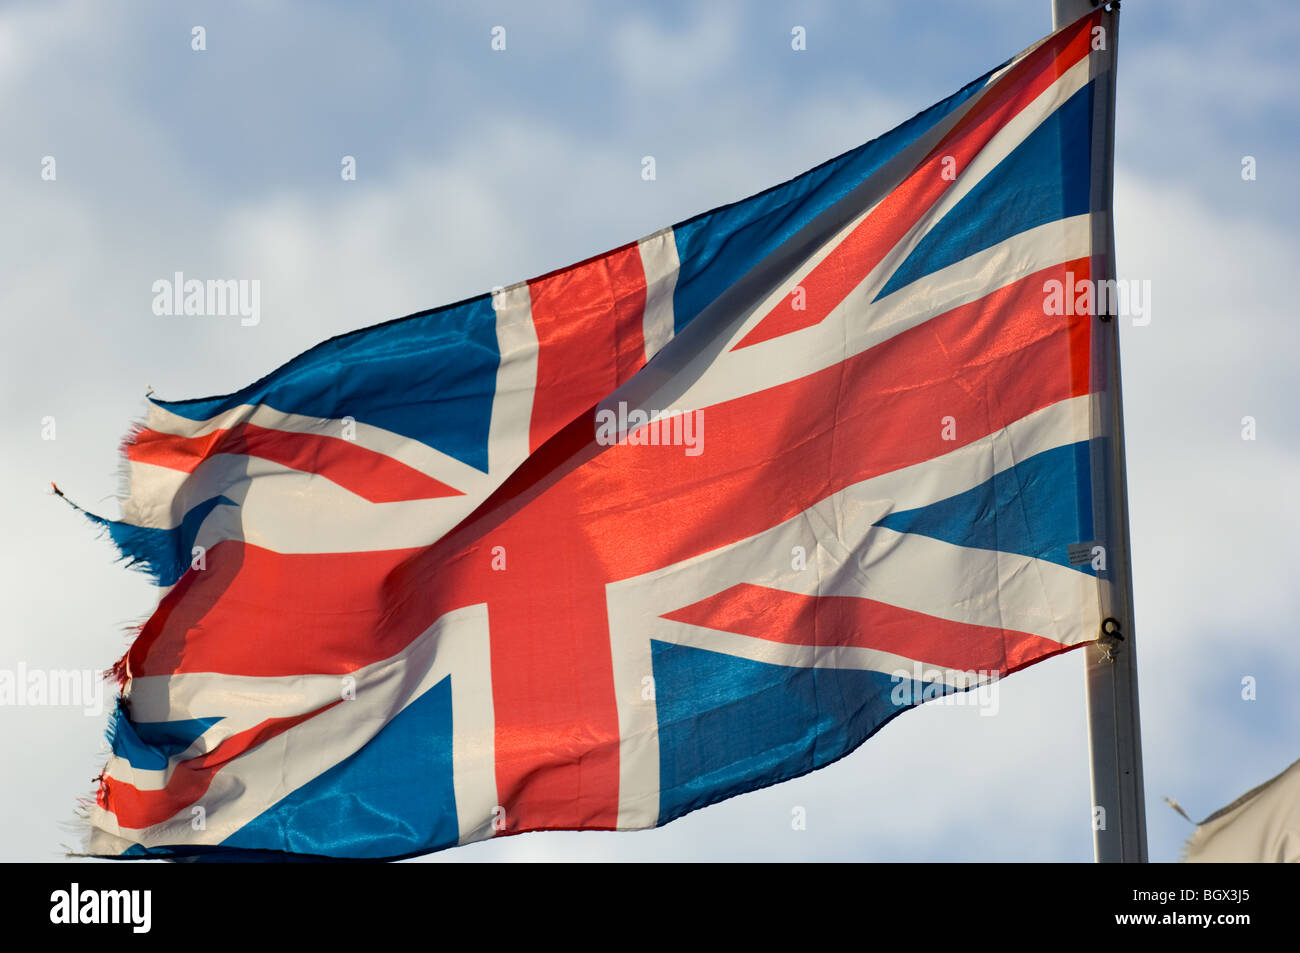 The national flag of the United Kingdom commonly knows as the Union Jack or Union Flag. - Stock Image